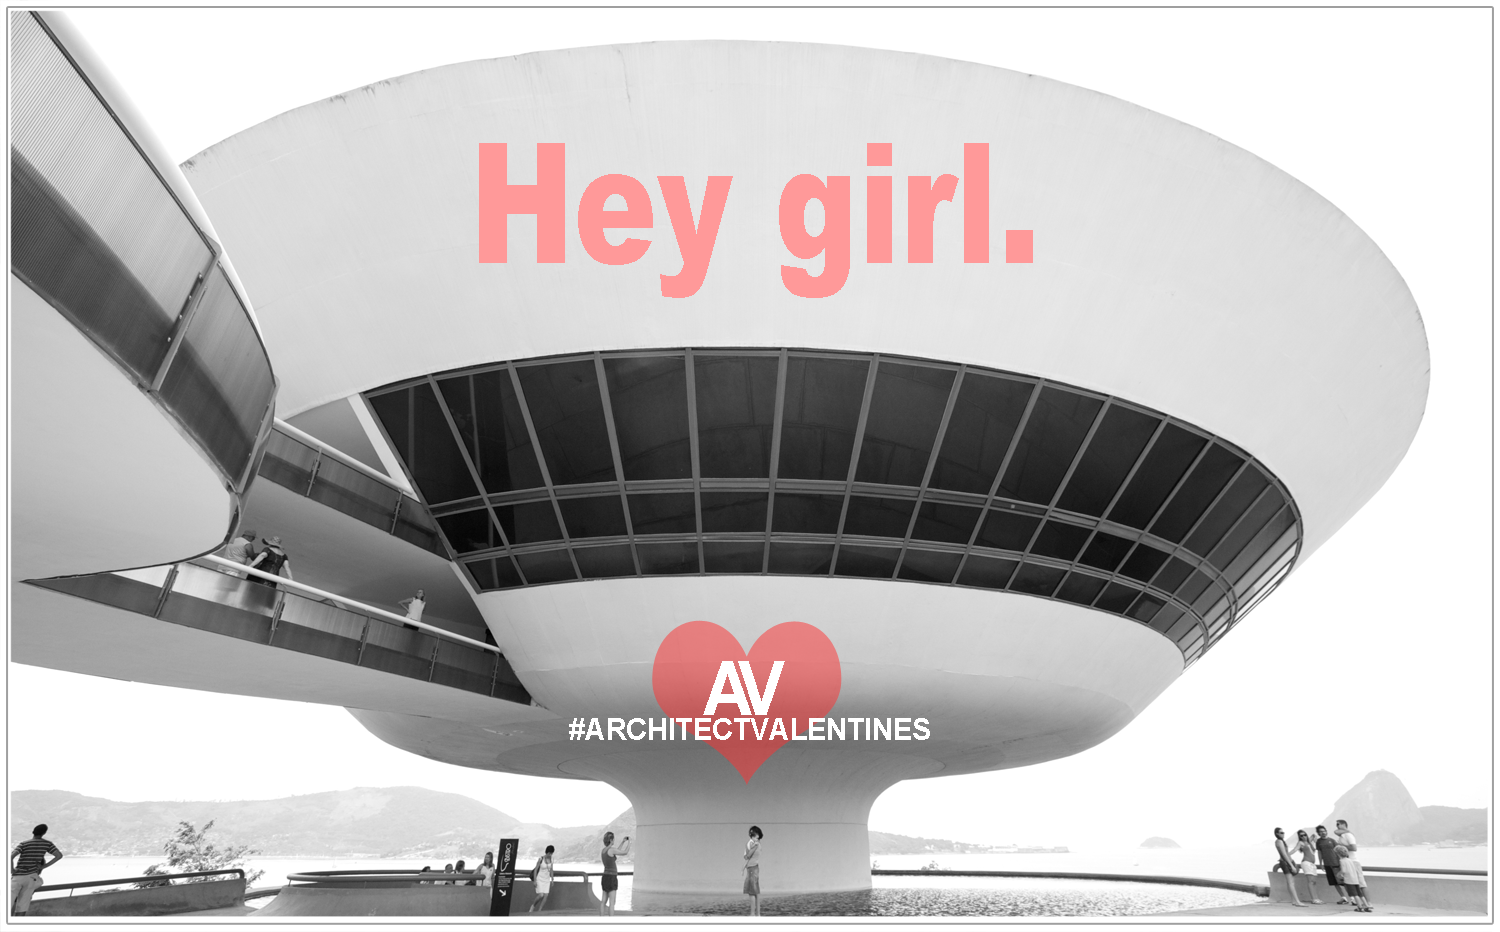 ARCHITECT VALENTINES 2014